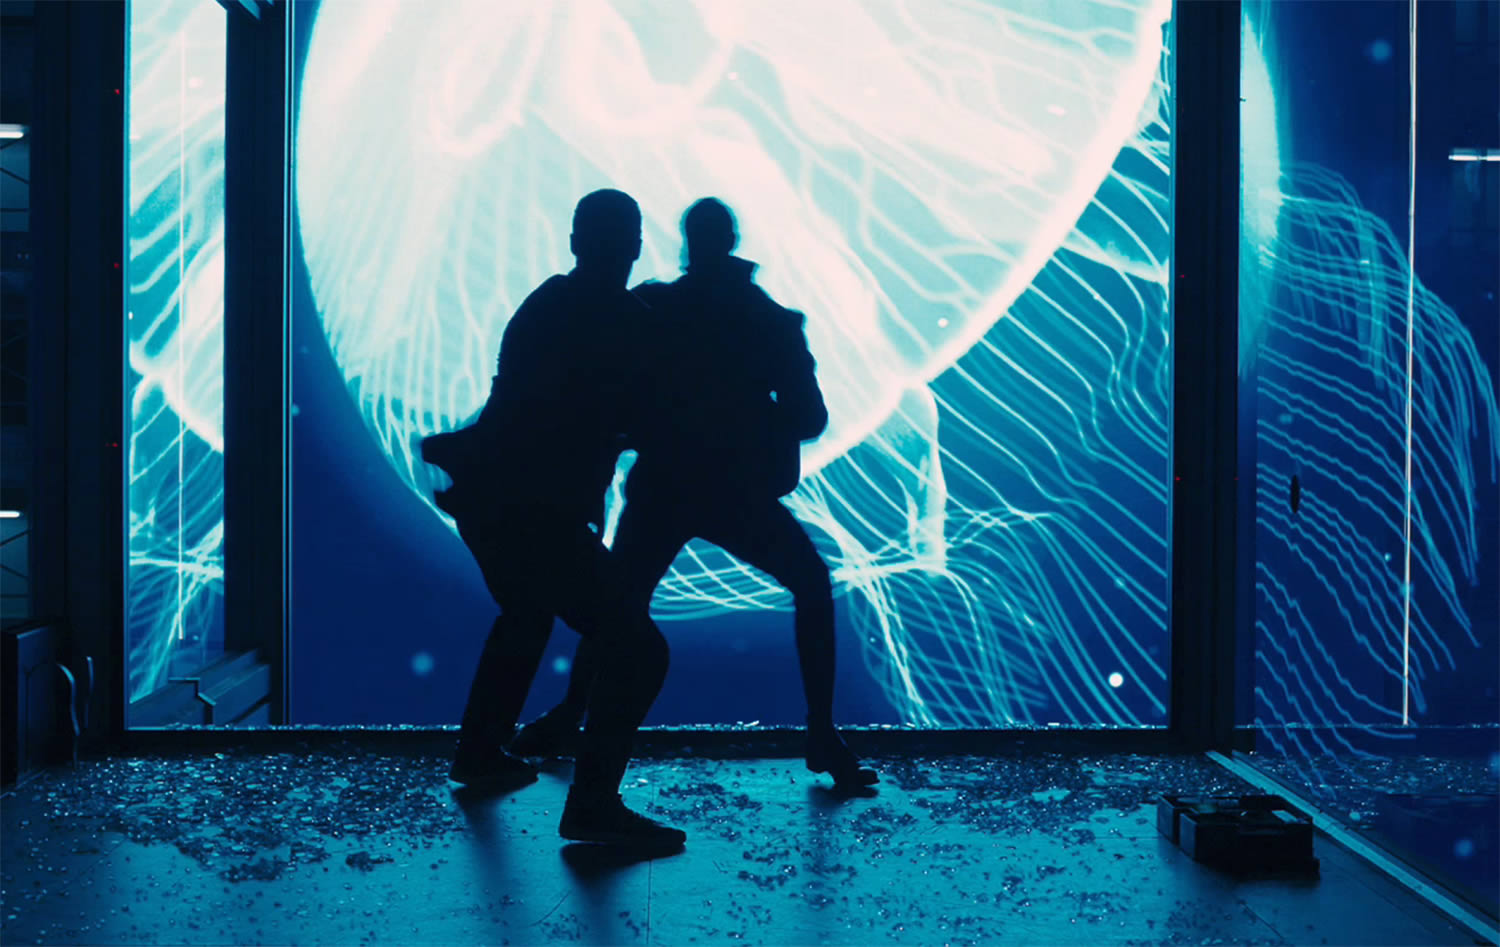 jellyfish scene in skyfall, blue lights